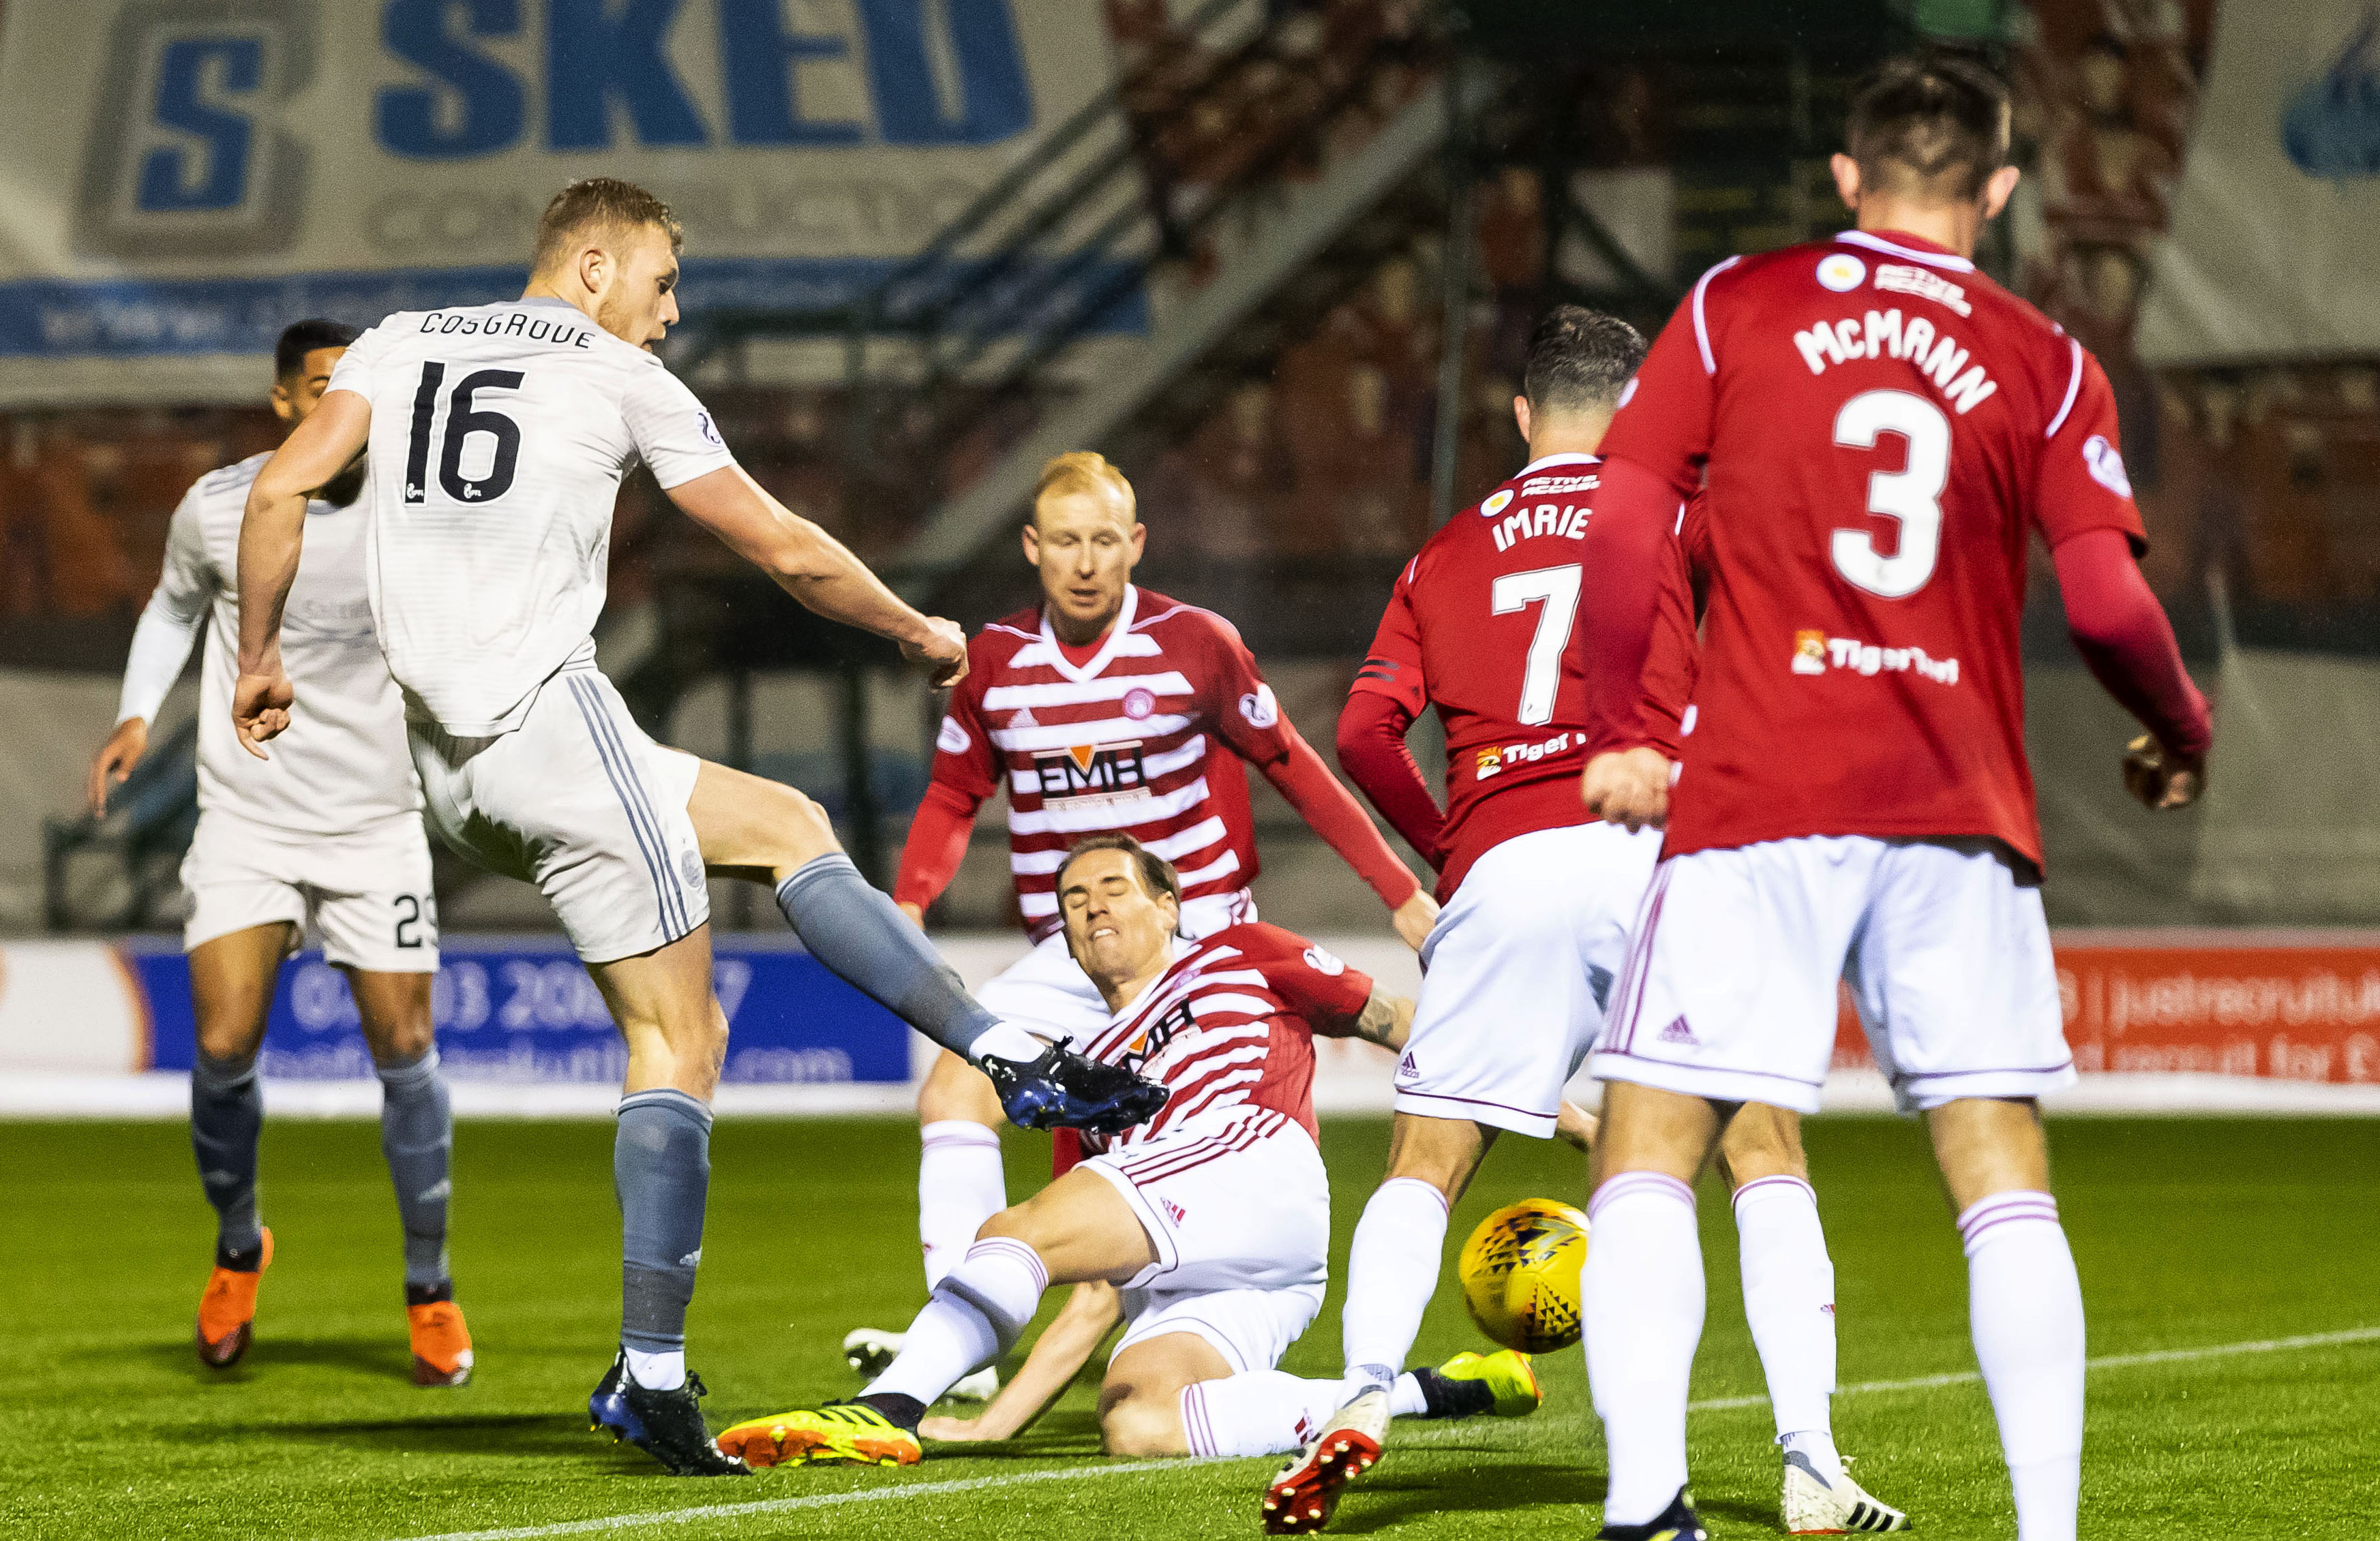 Aberdeen's Sam Cosgrove scores to make it 1-0 against Hamilton in January's 3-0 win.